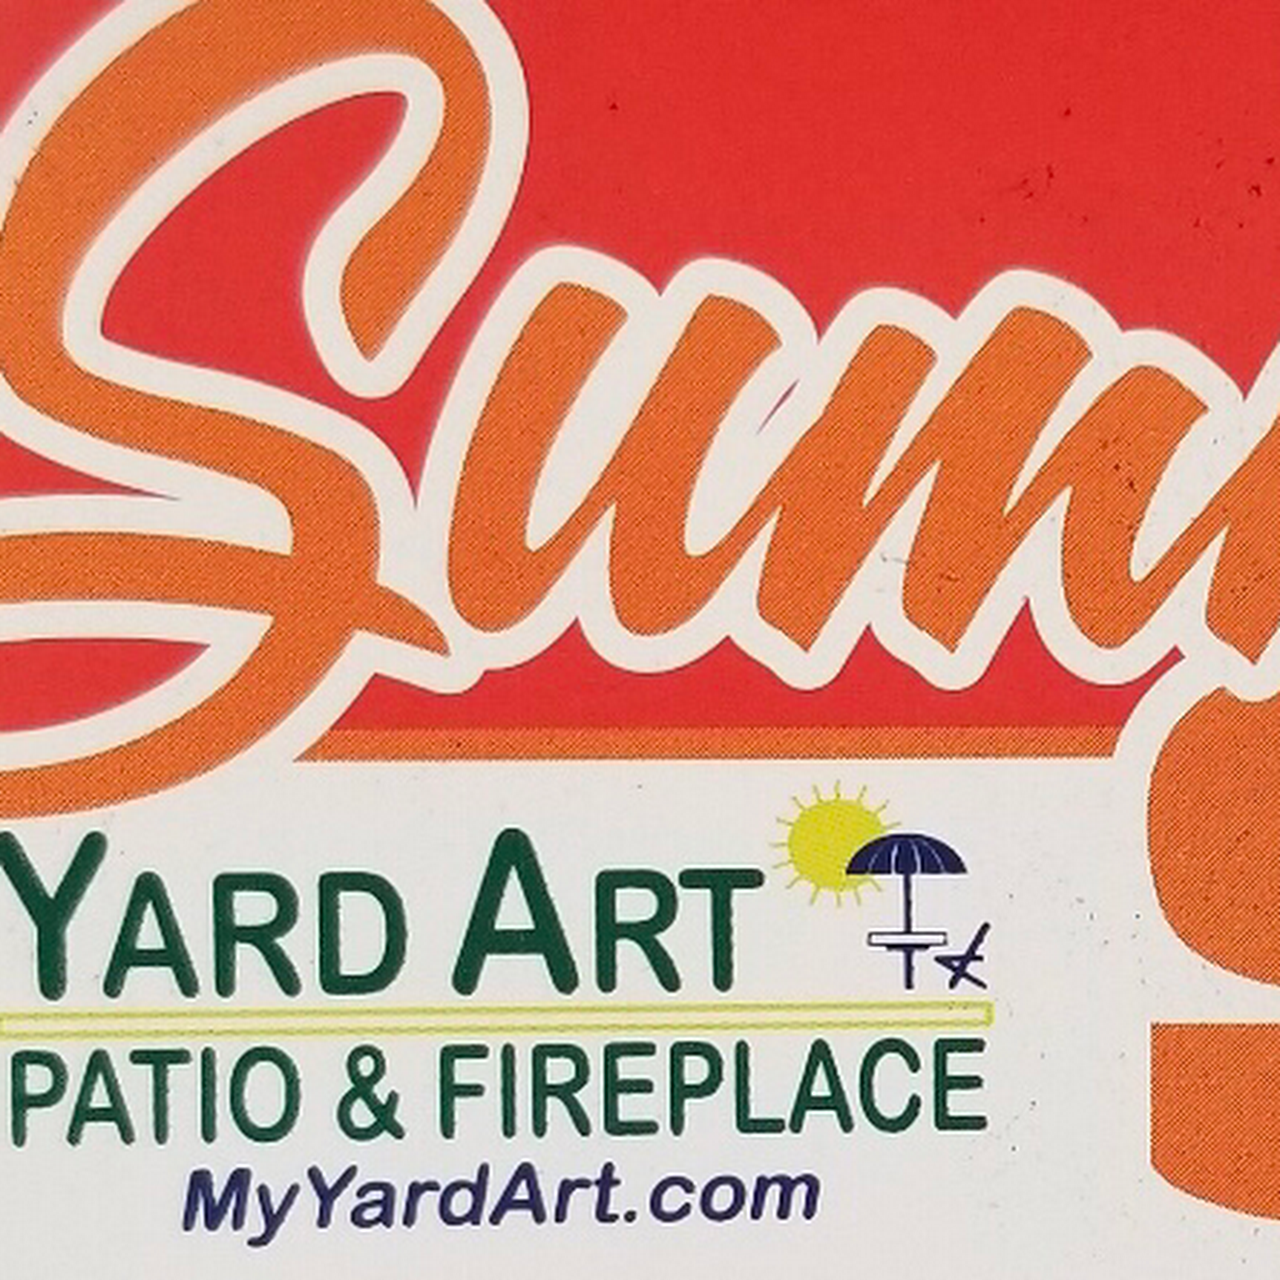 Yard Art Patio Fireplace Fort Worth Outdoor Furniture Store